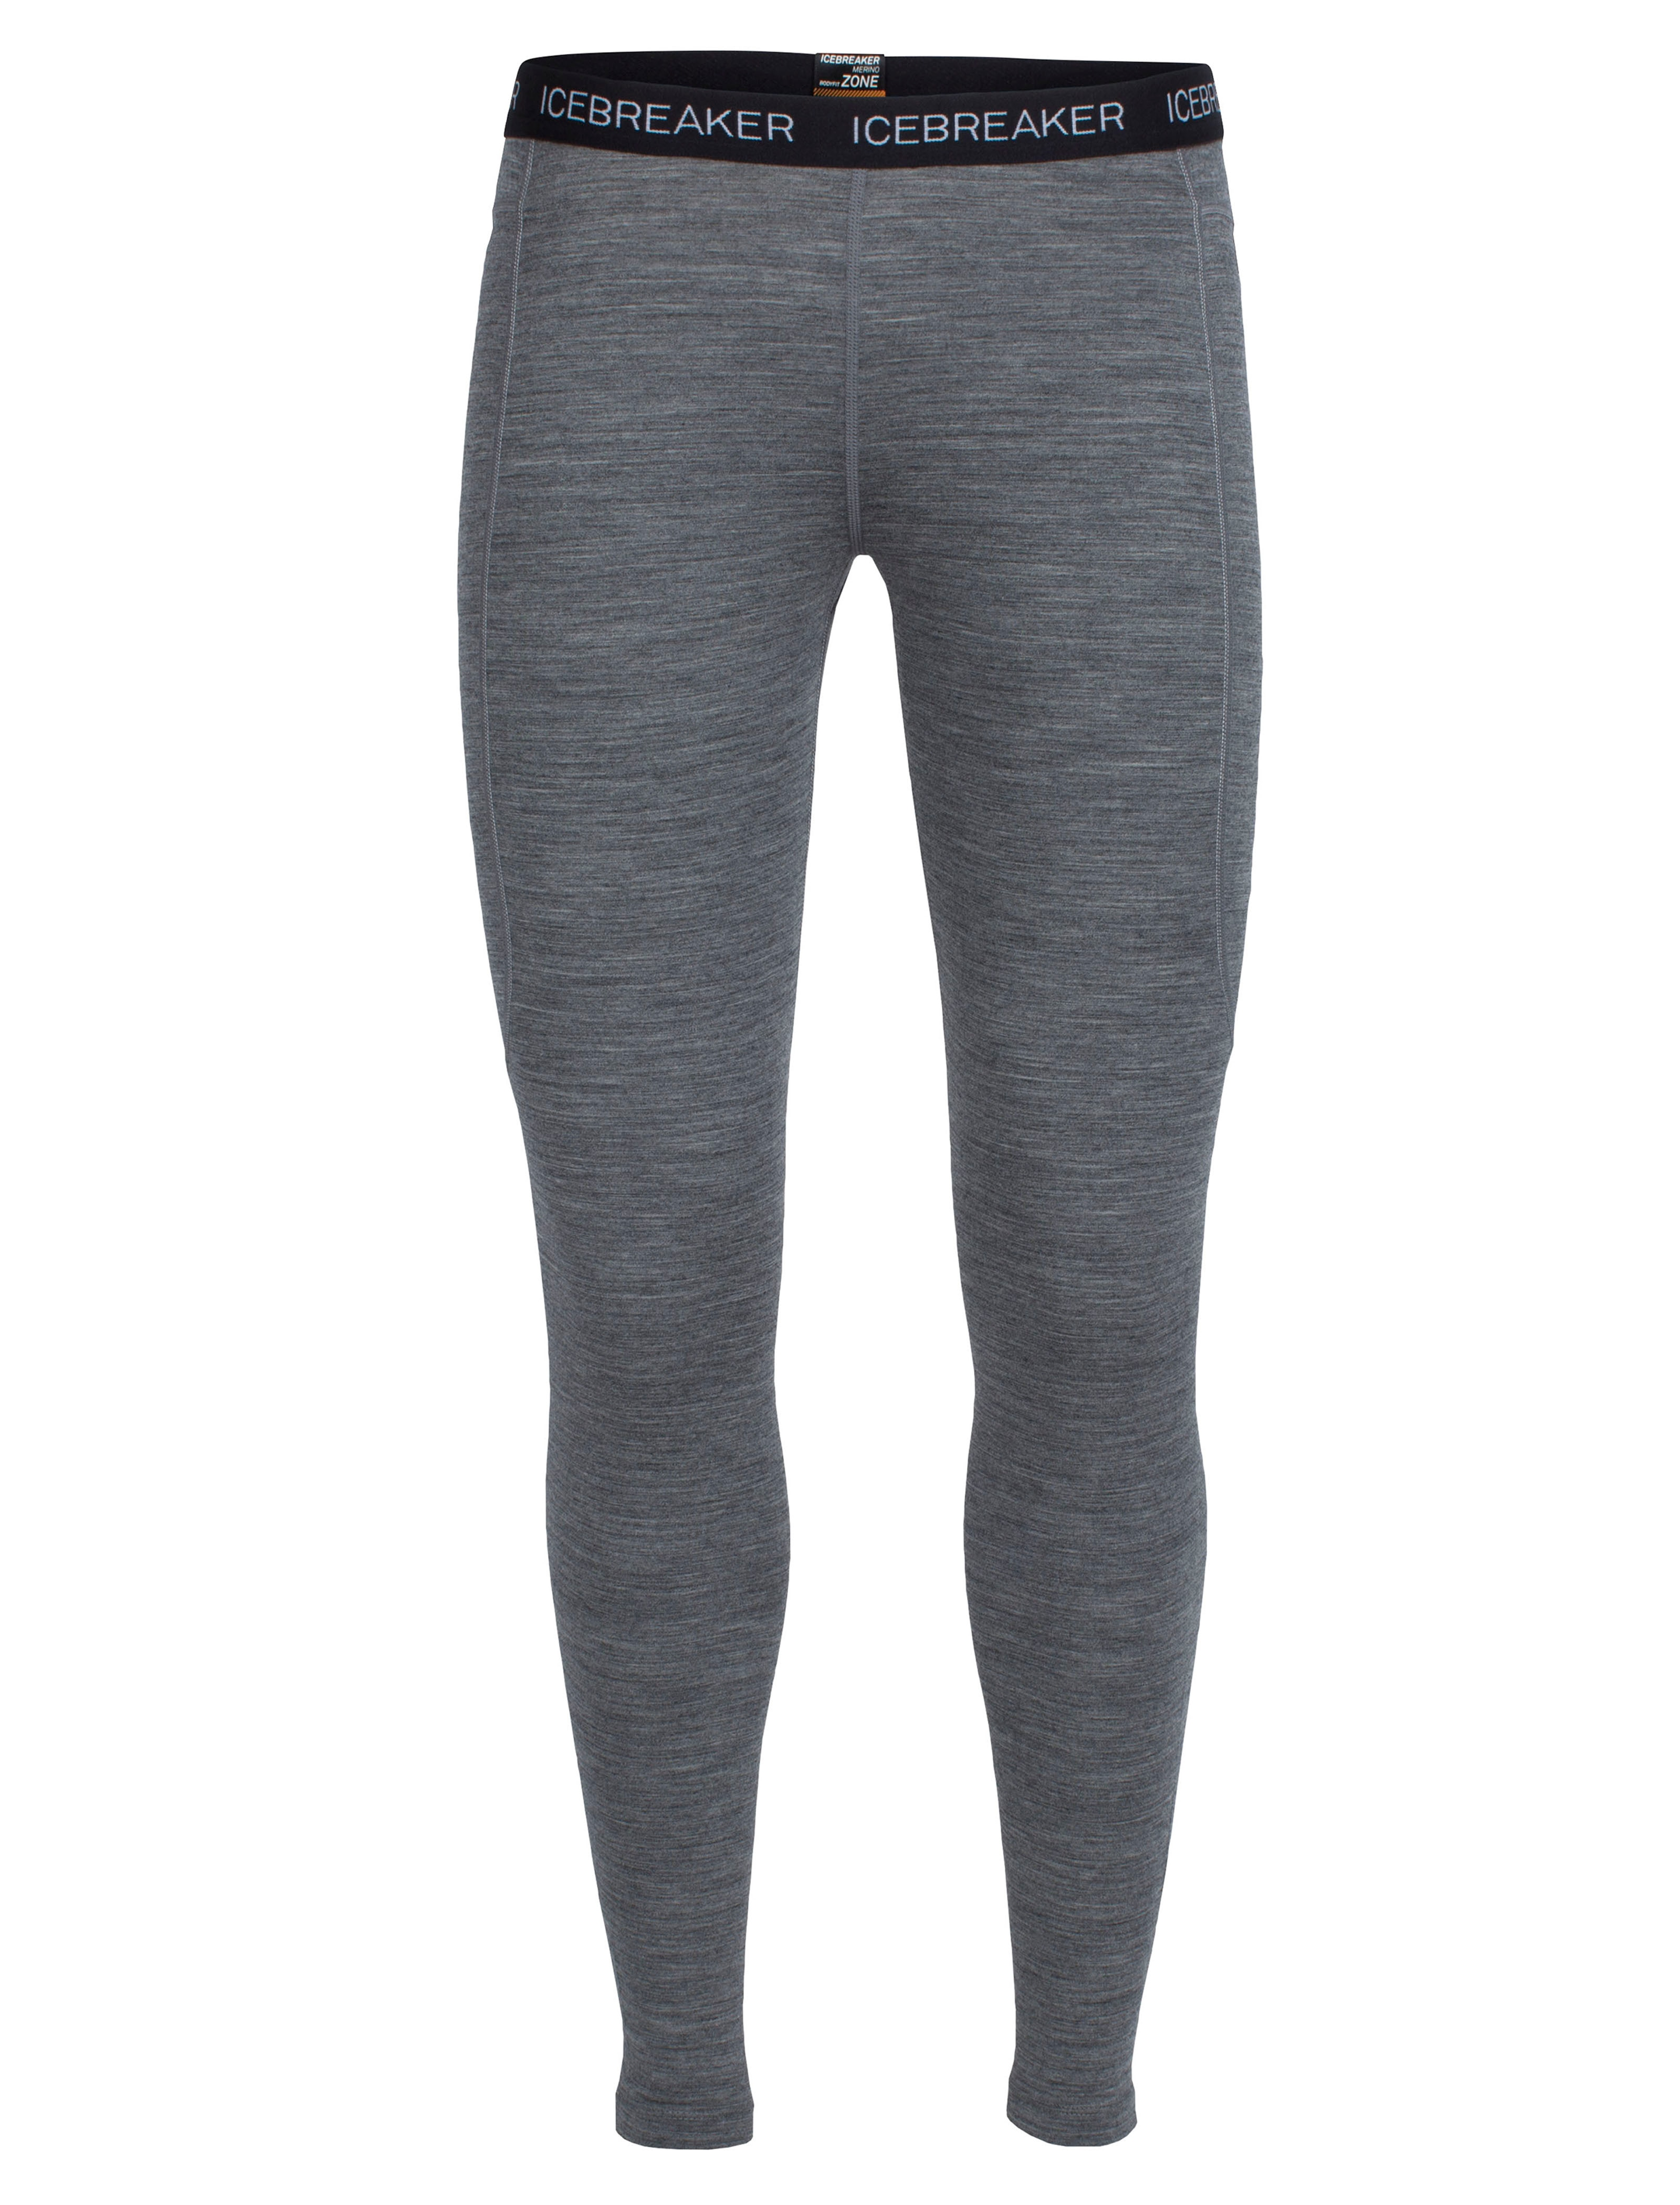 Icebreaker Zone Leggings, W's